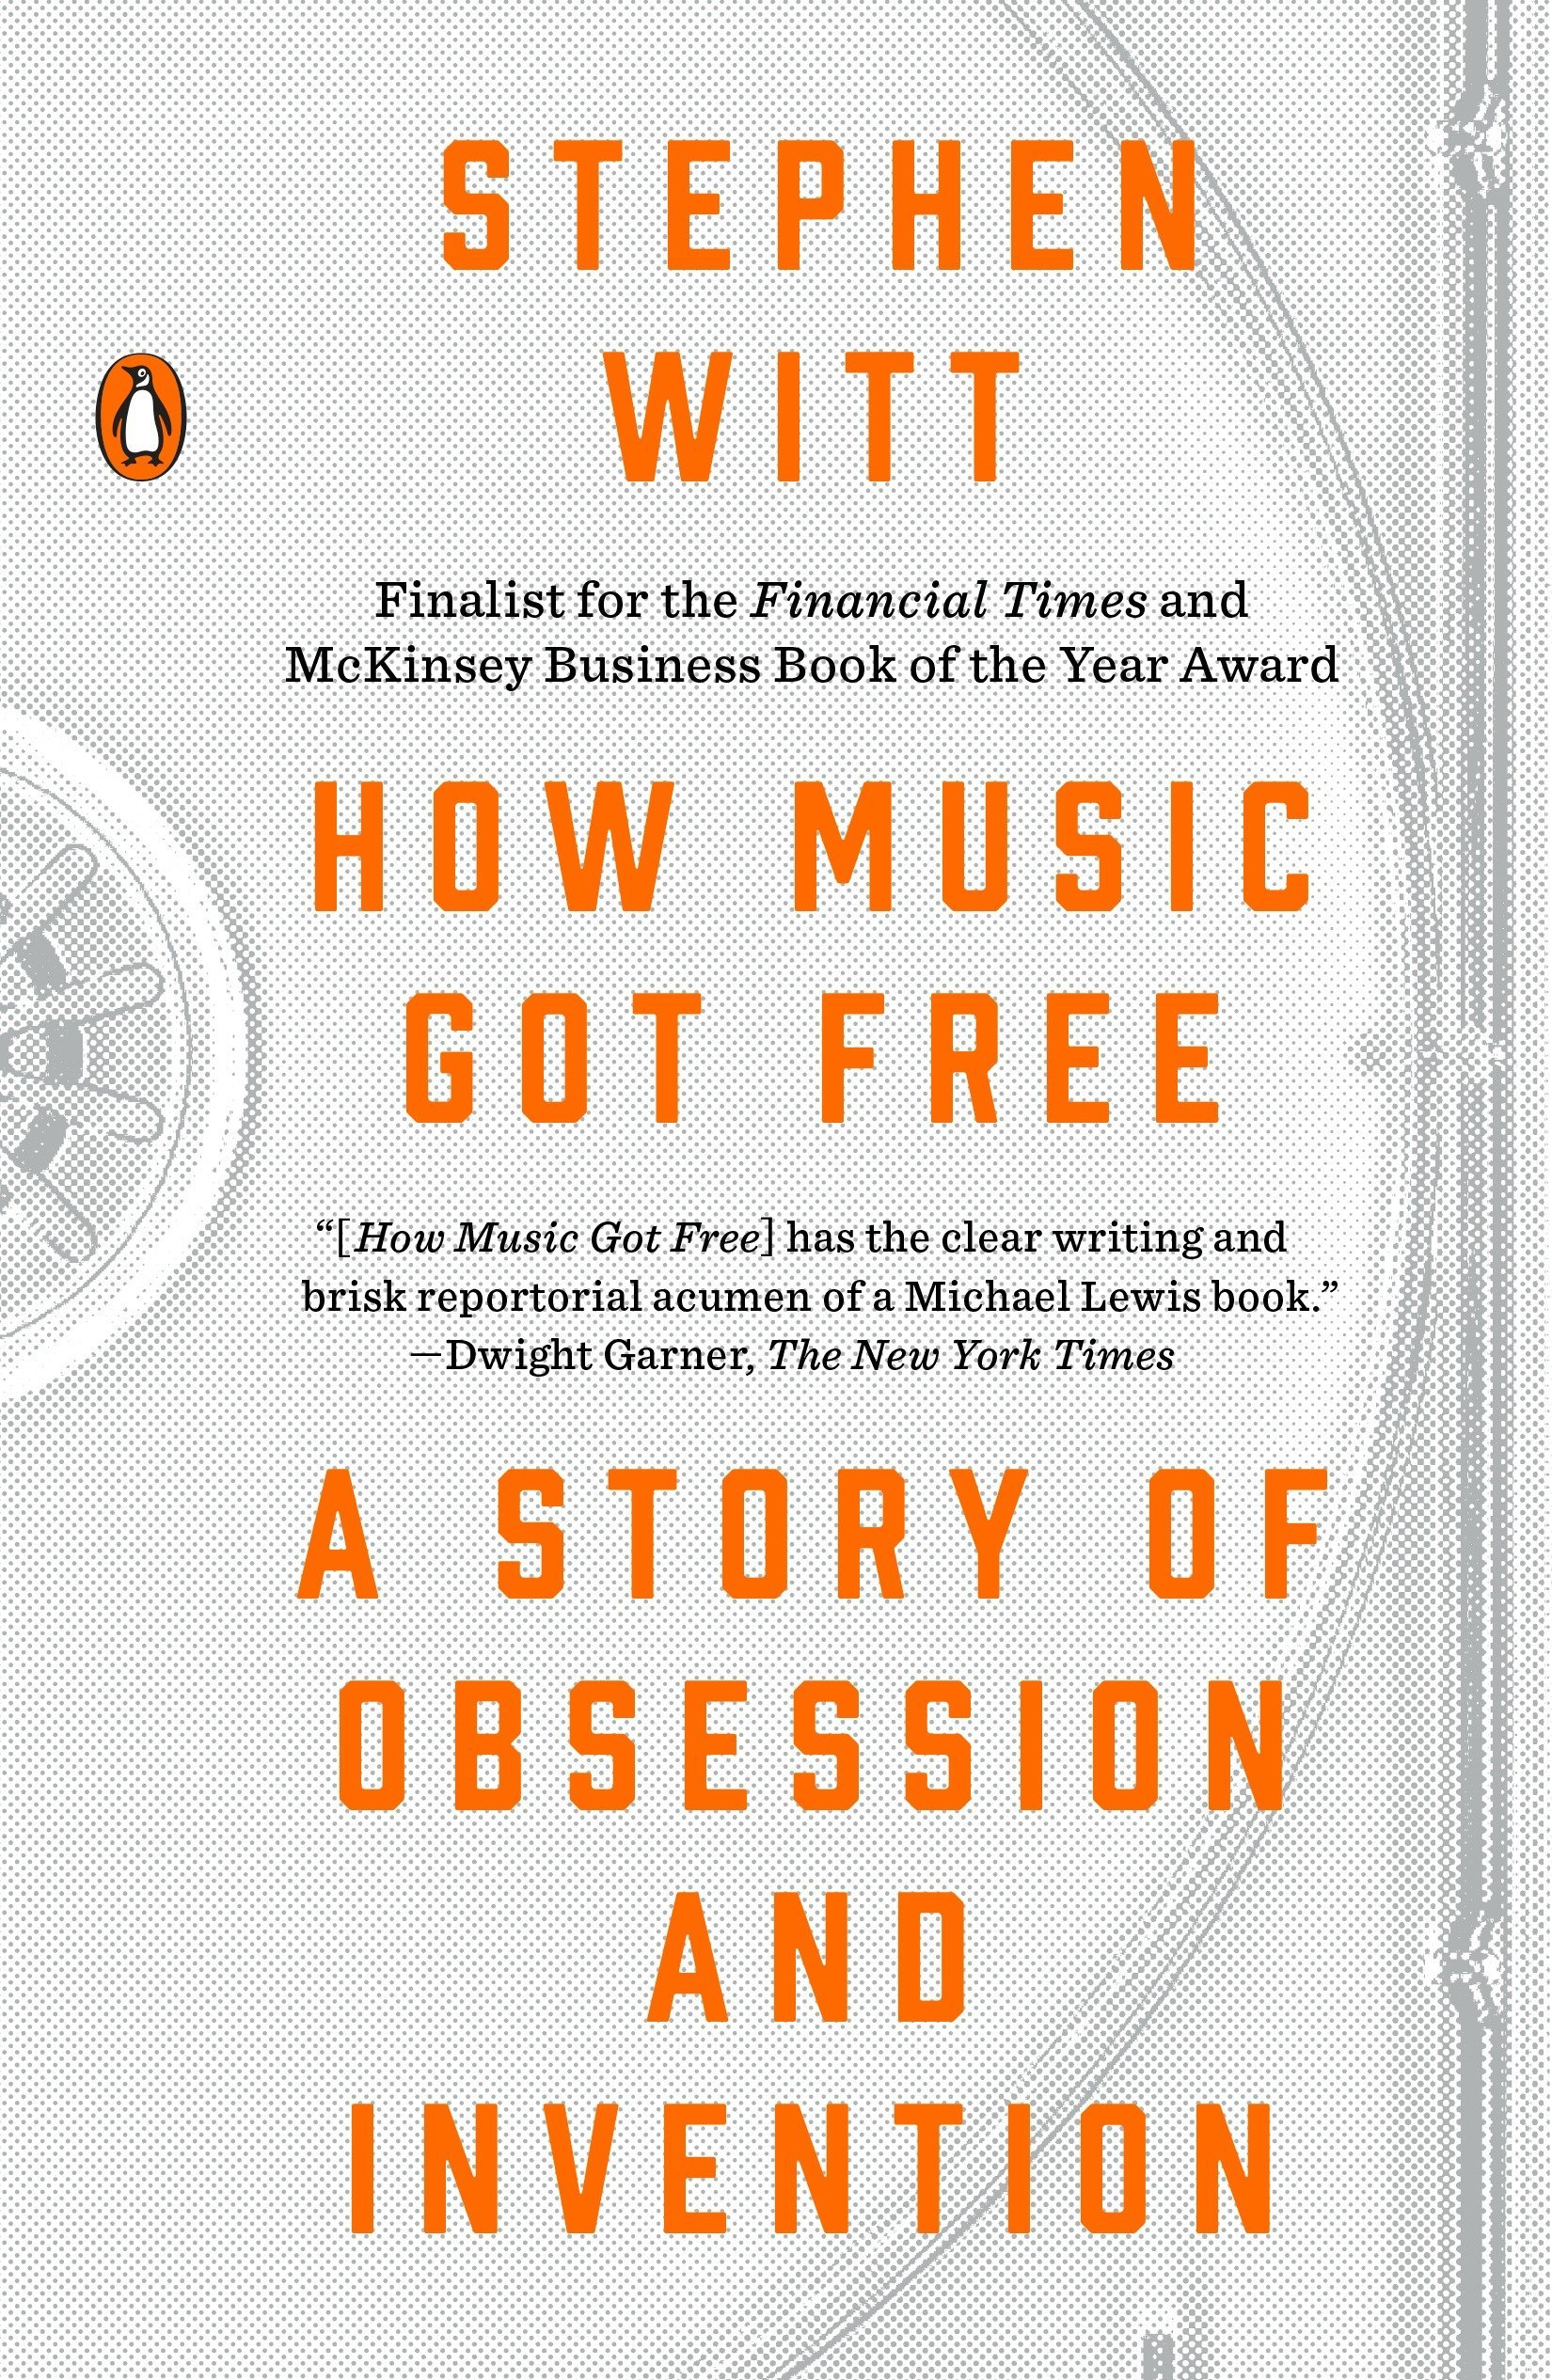 How Music Got Free: A Story of Obsession and Invention: Amazon es